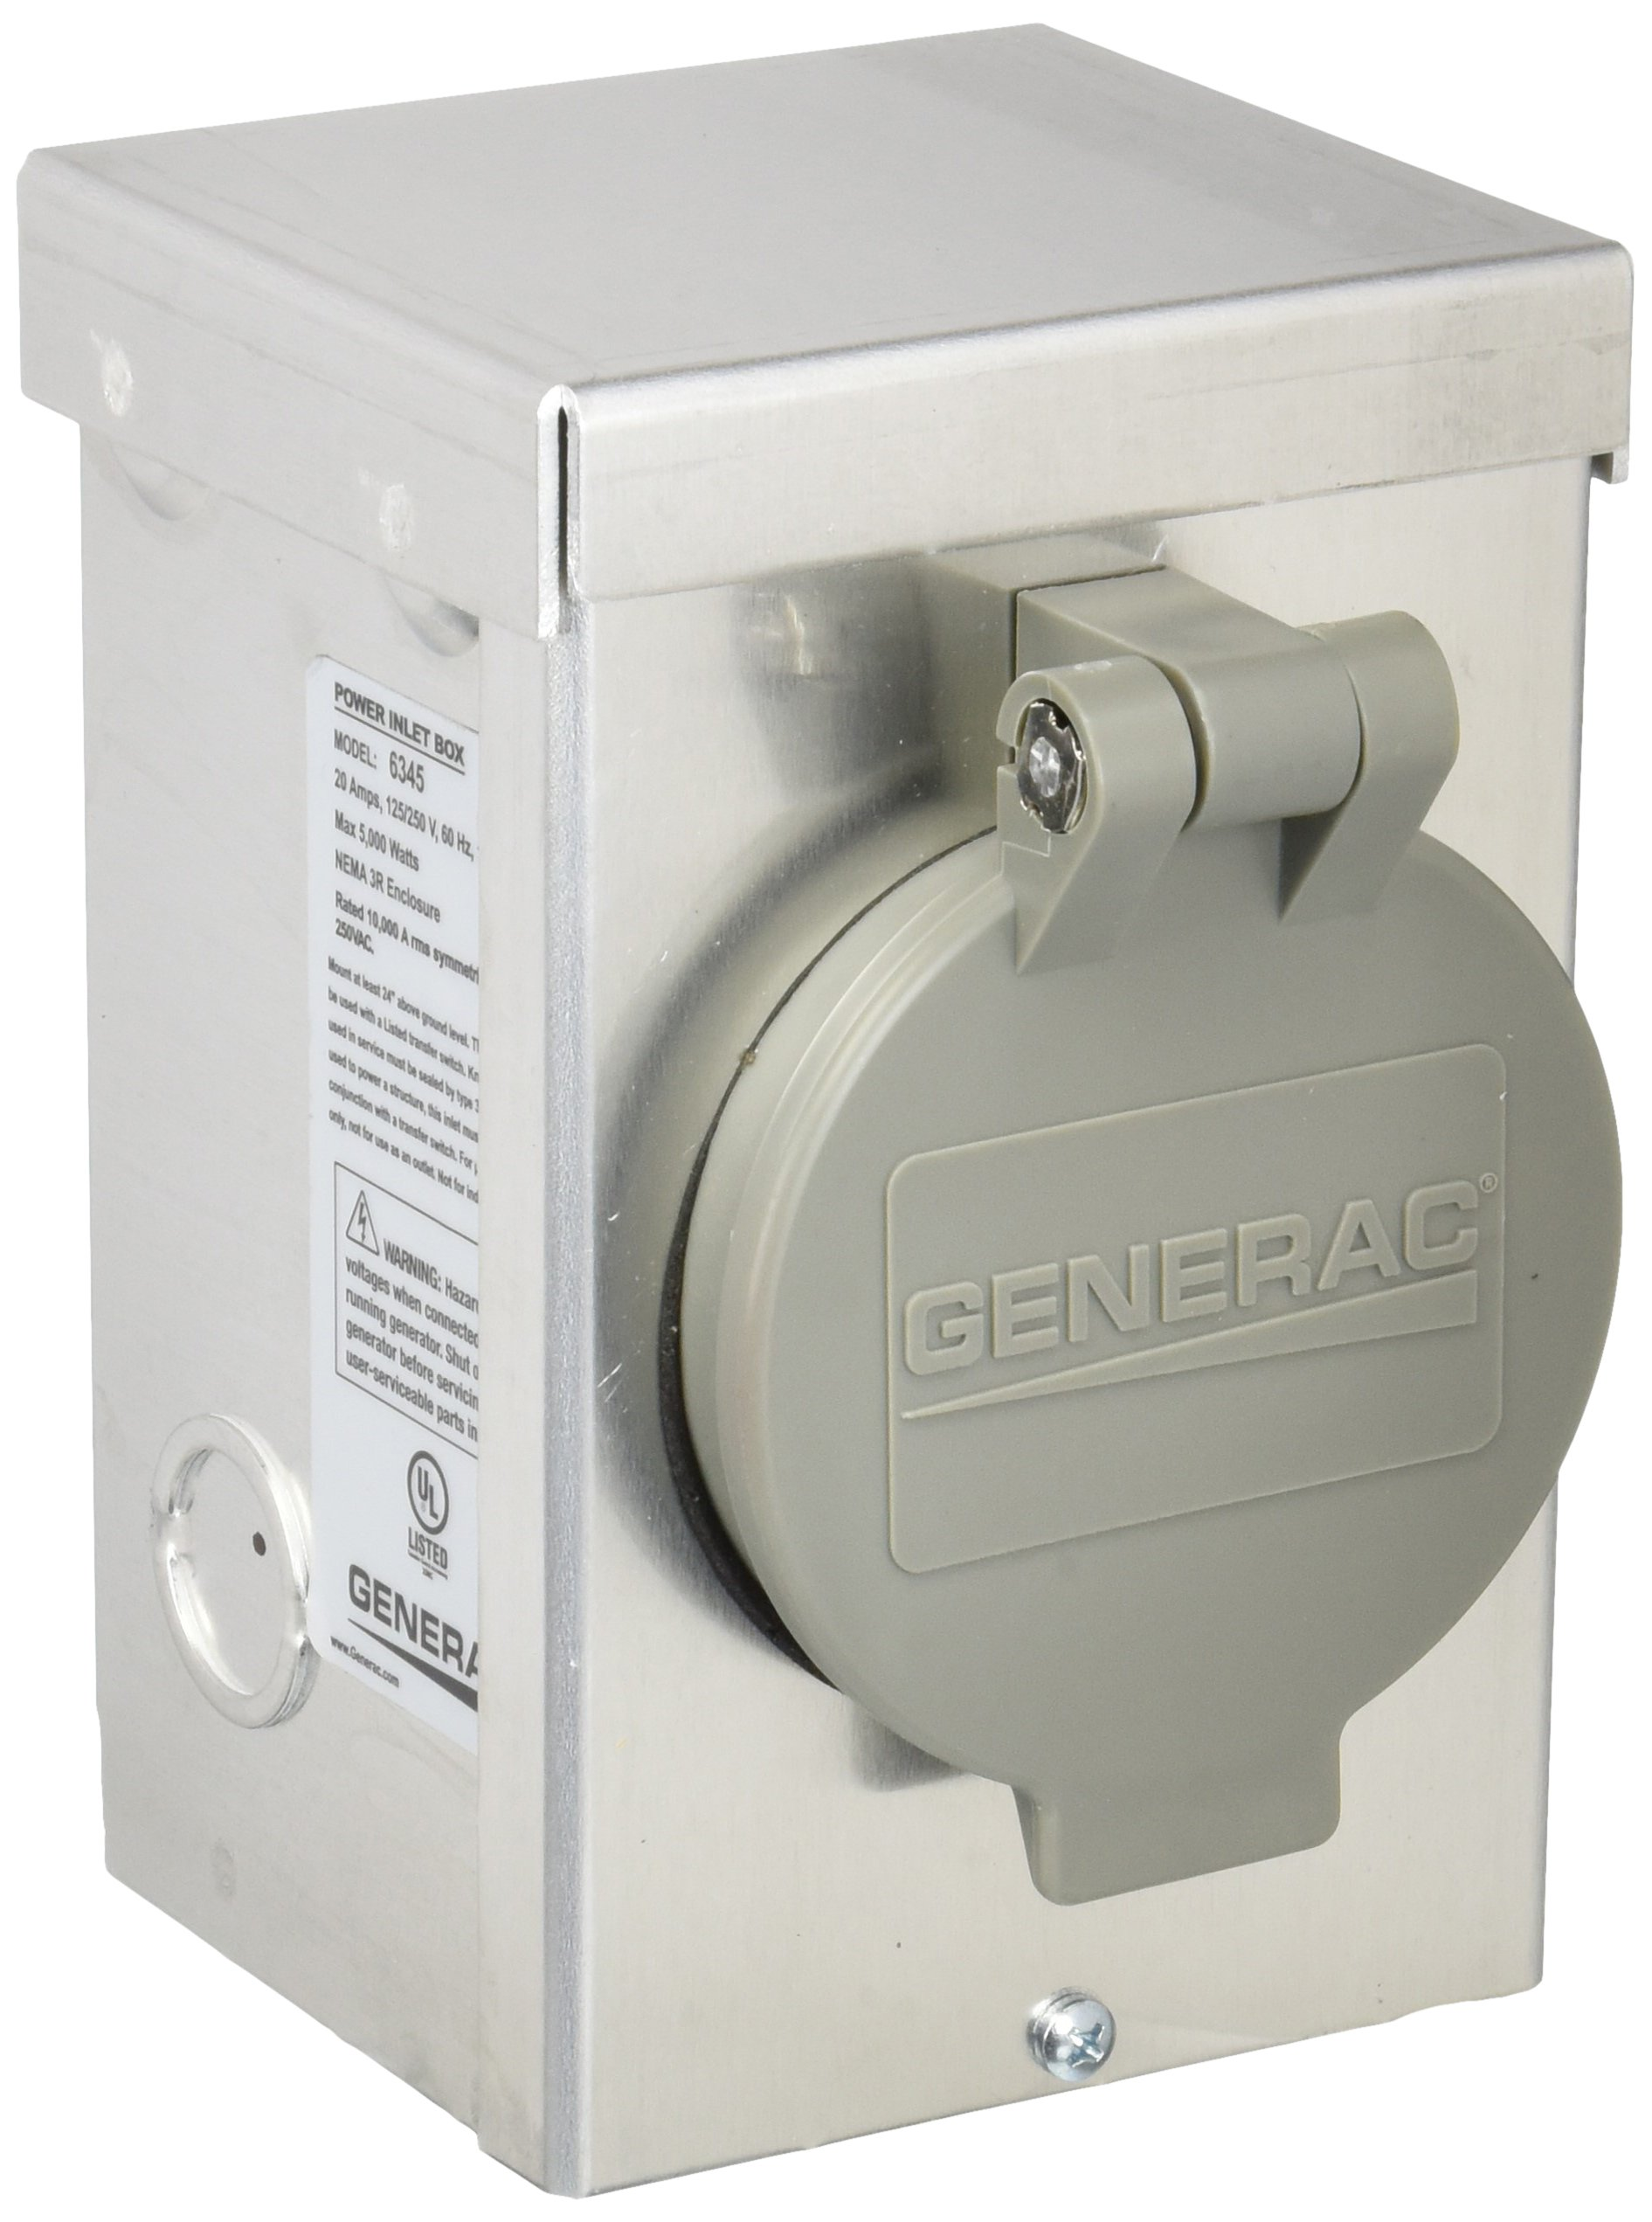 Generac 6345 20-Amp 125/250V Aluminum Power Inlet Box with Spring-Loaded Flip Lid